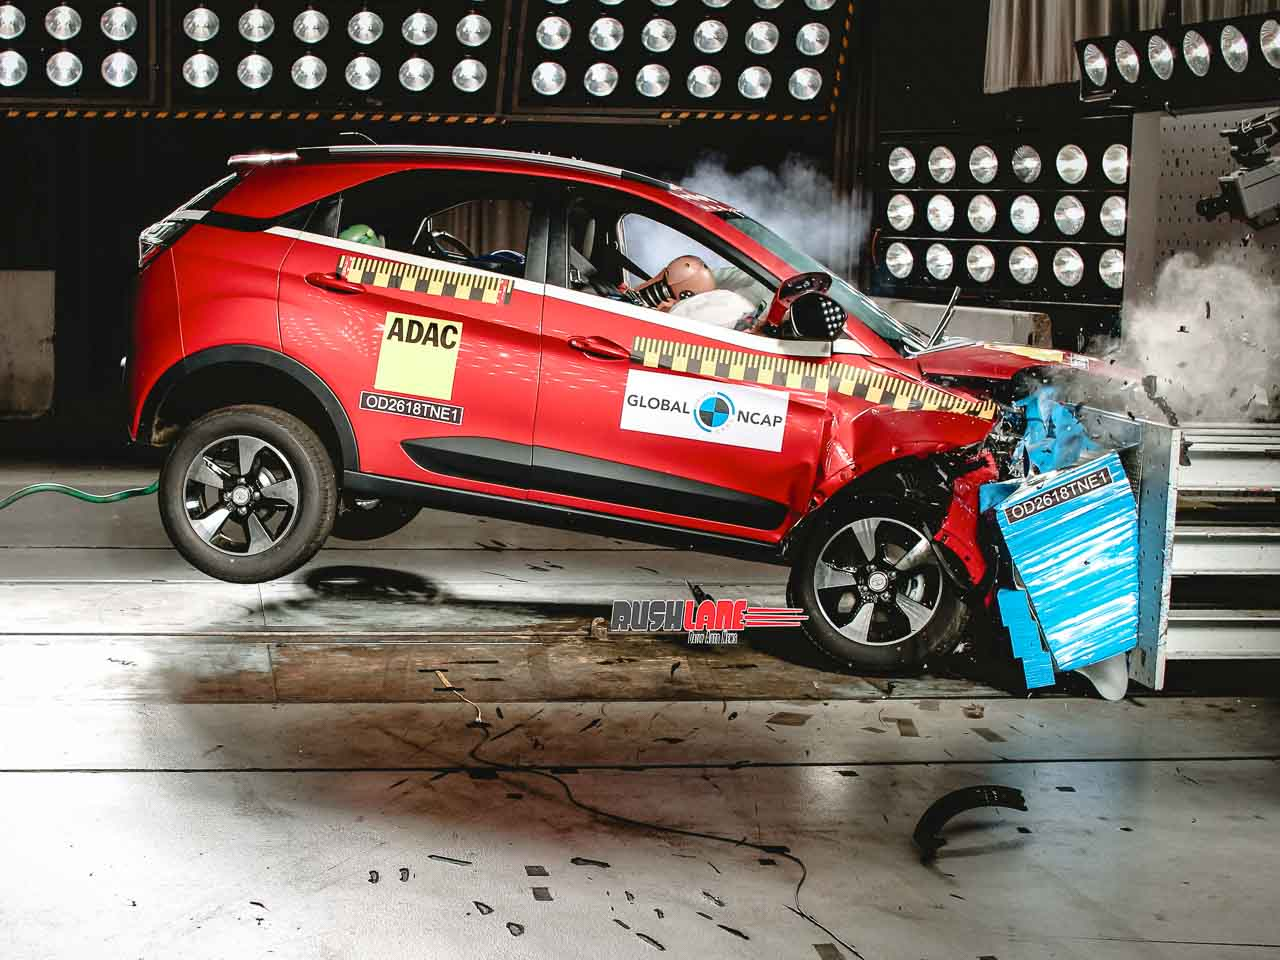 Tata Nexon became first Indian car to score 5 Star safety rating in Dec 2018